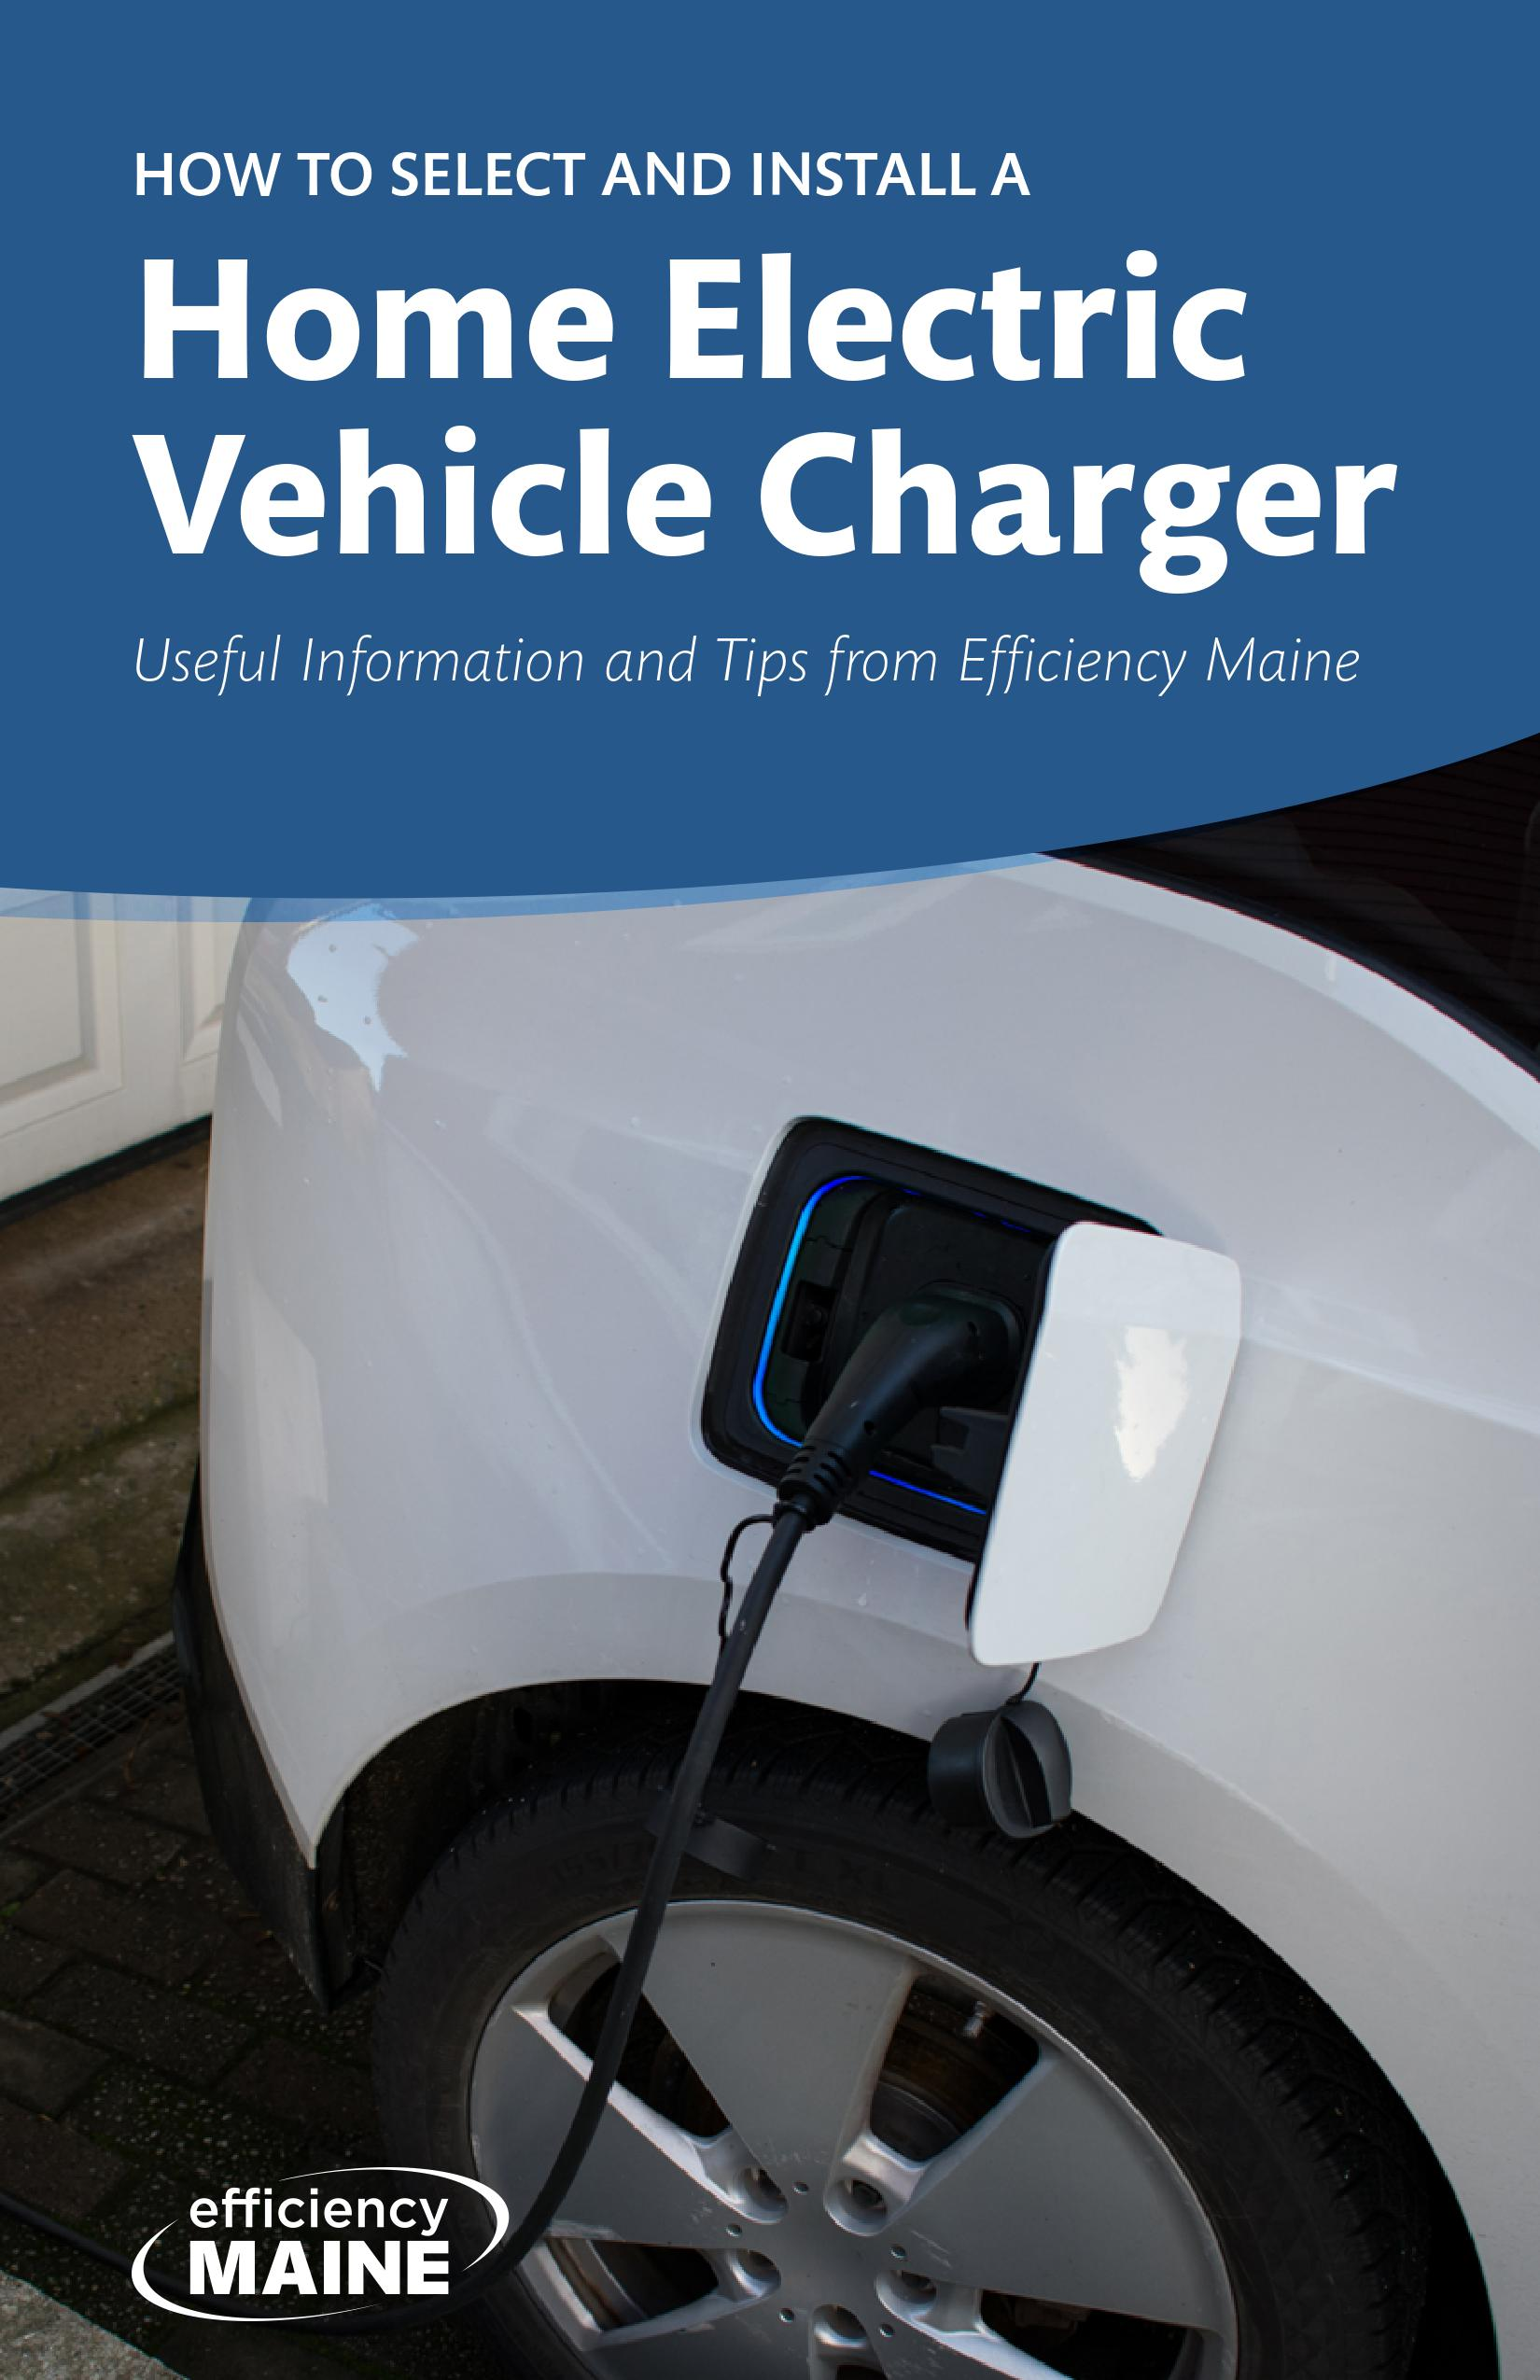 """Download PDF of """"How to Select and Install a Home Electric Vehicle Charger"""" guidebook"""